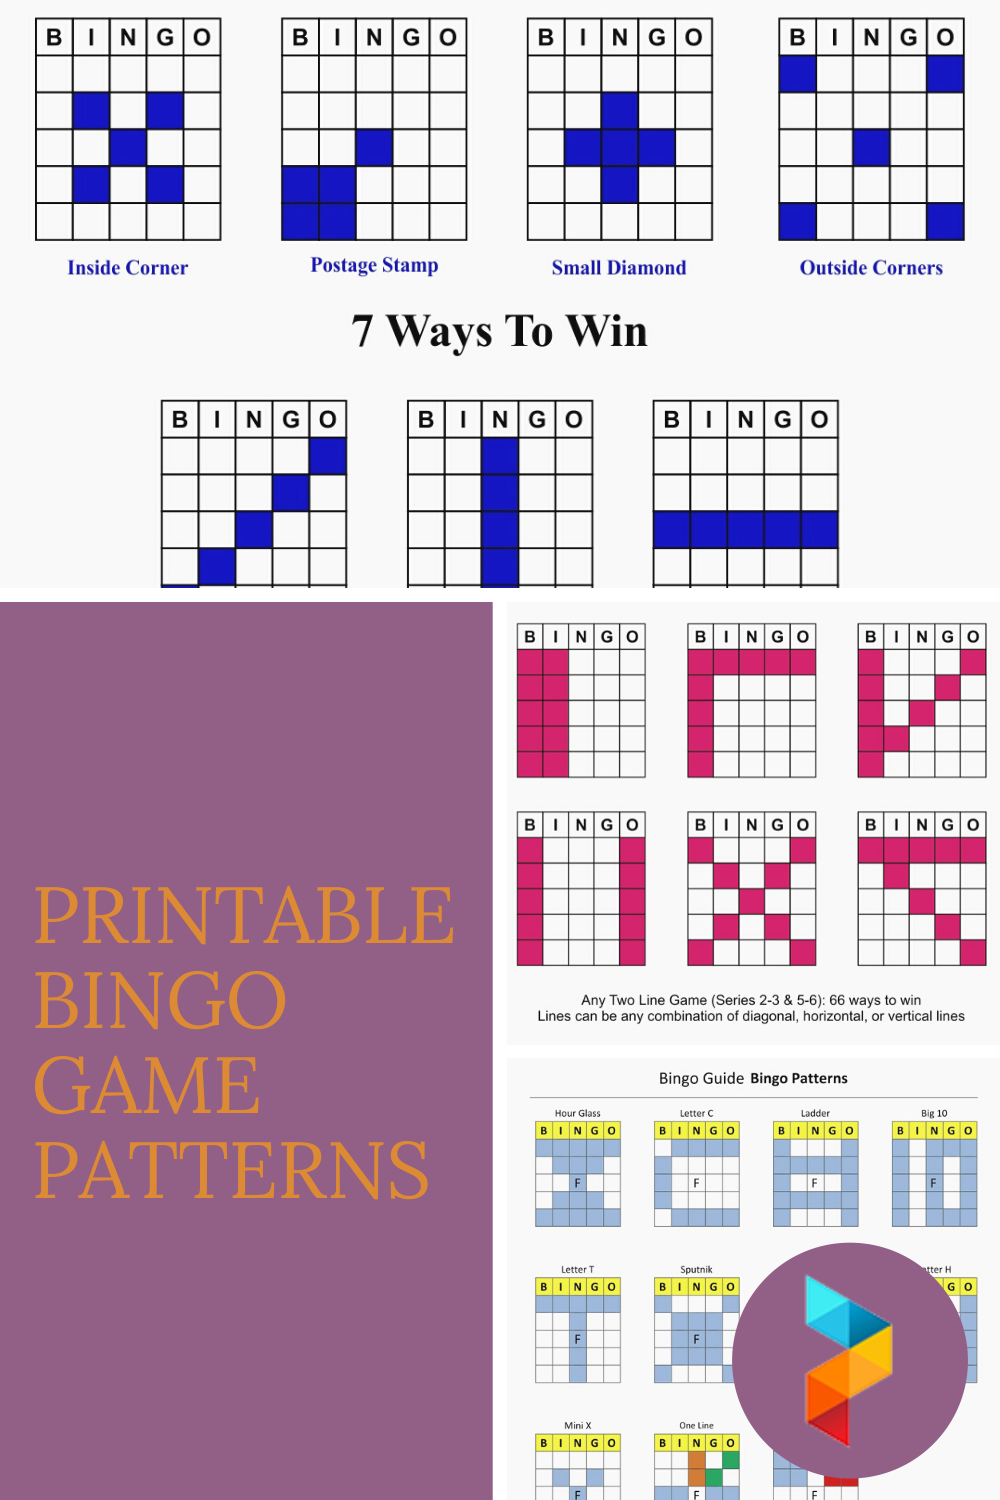 Printable Bingo Game Patterns